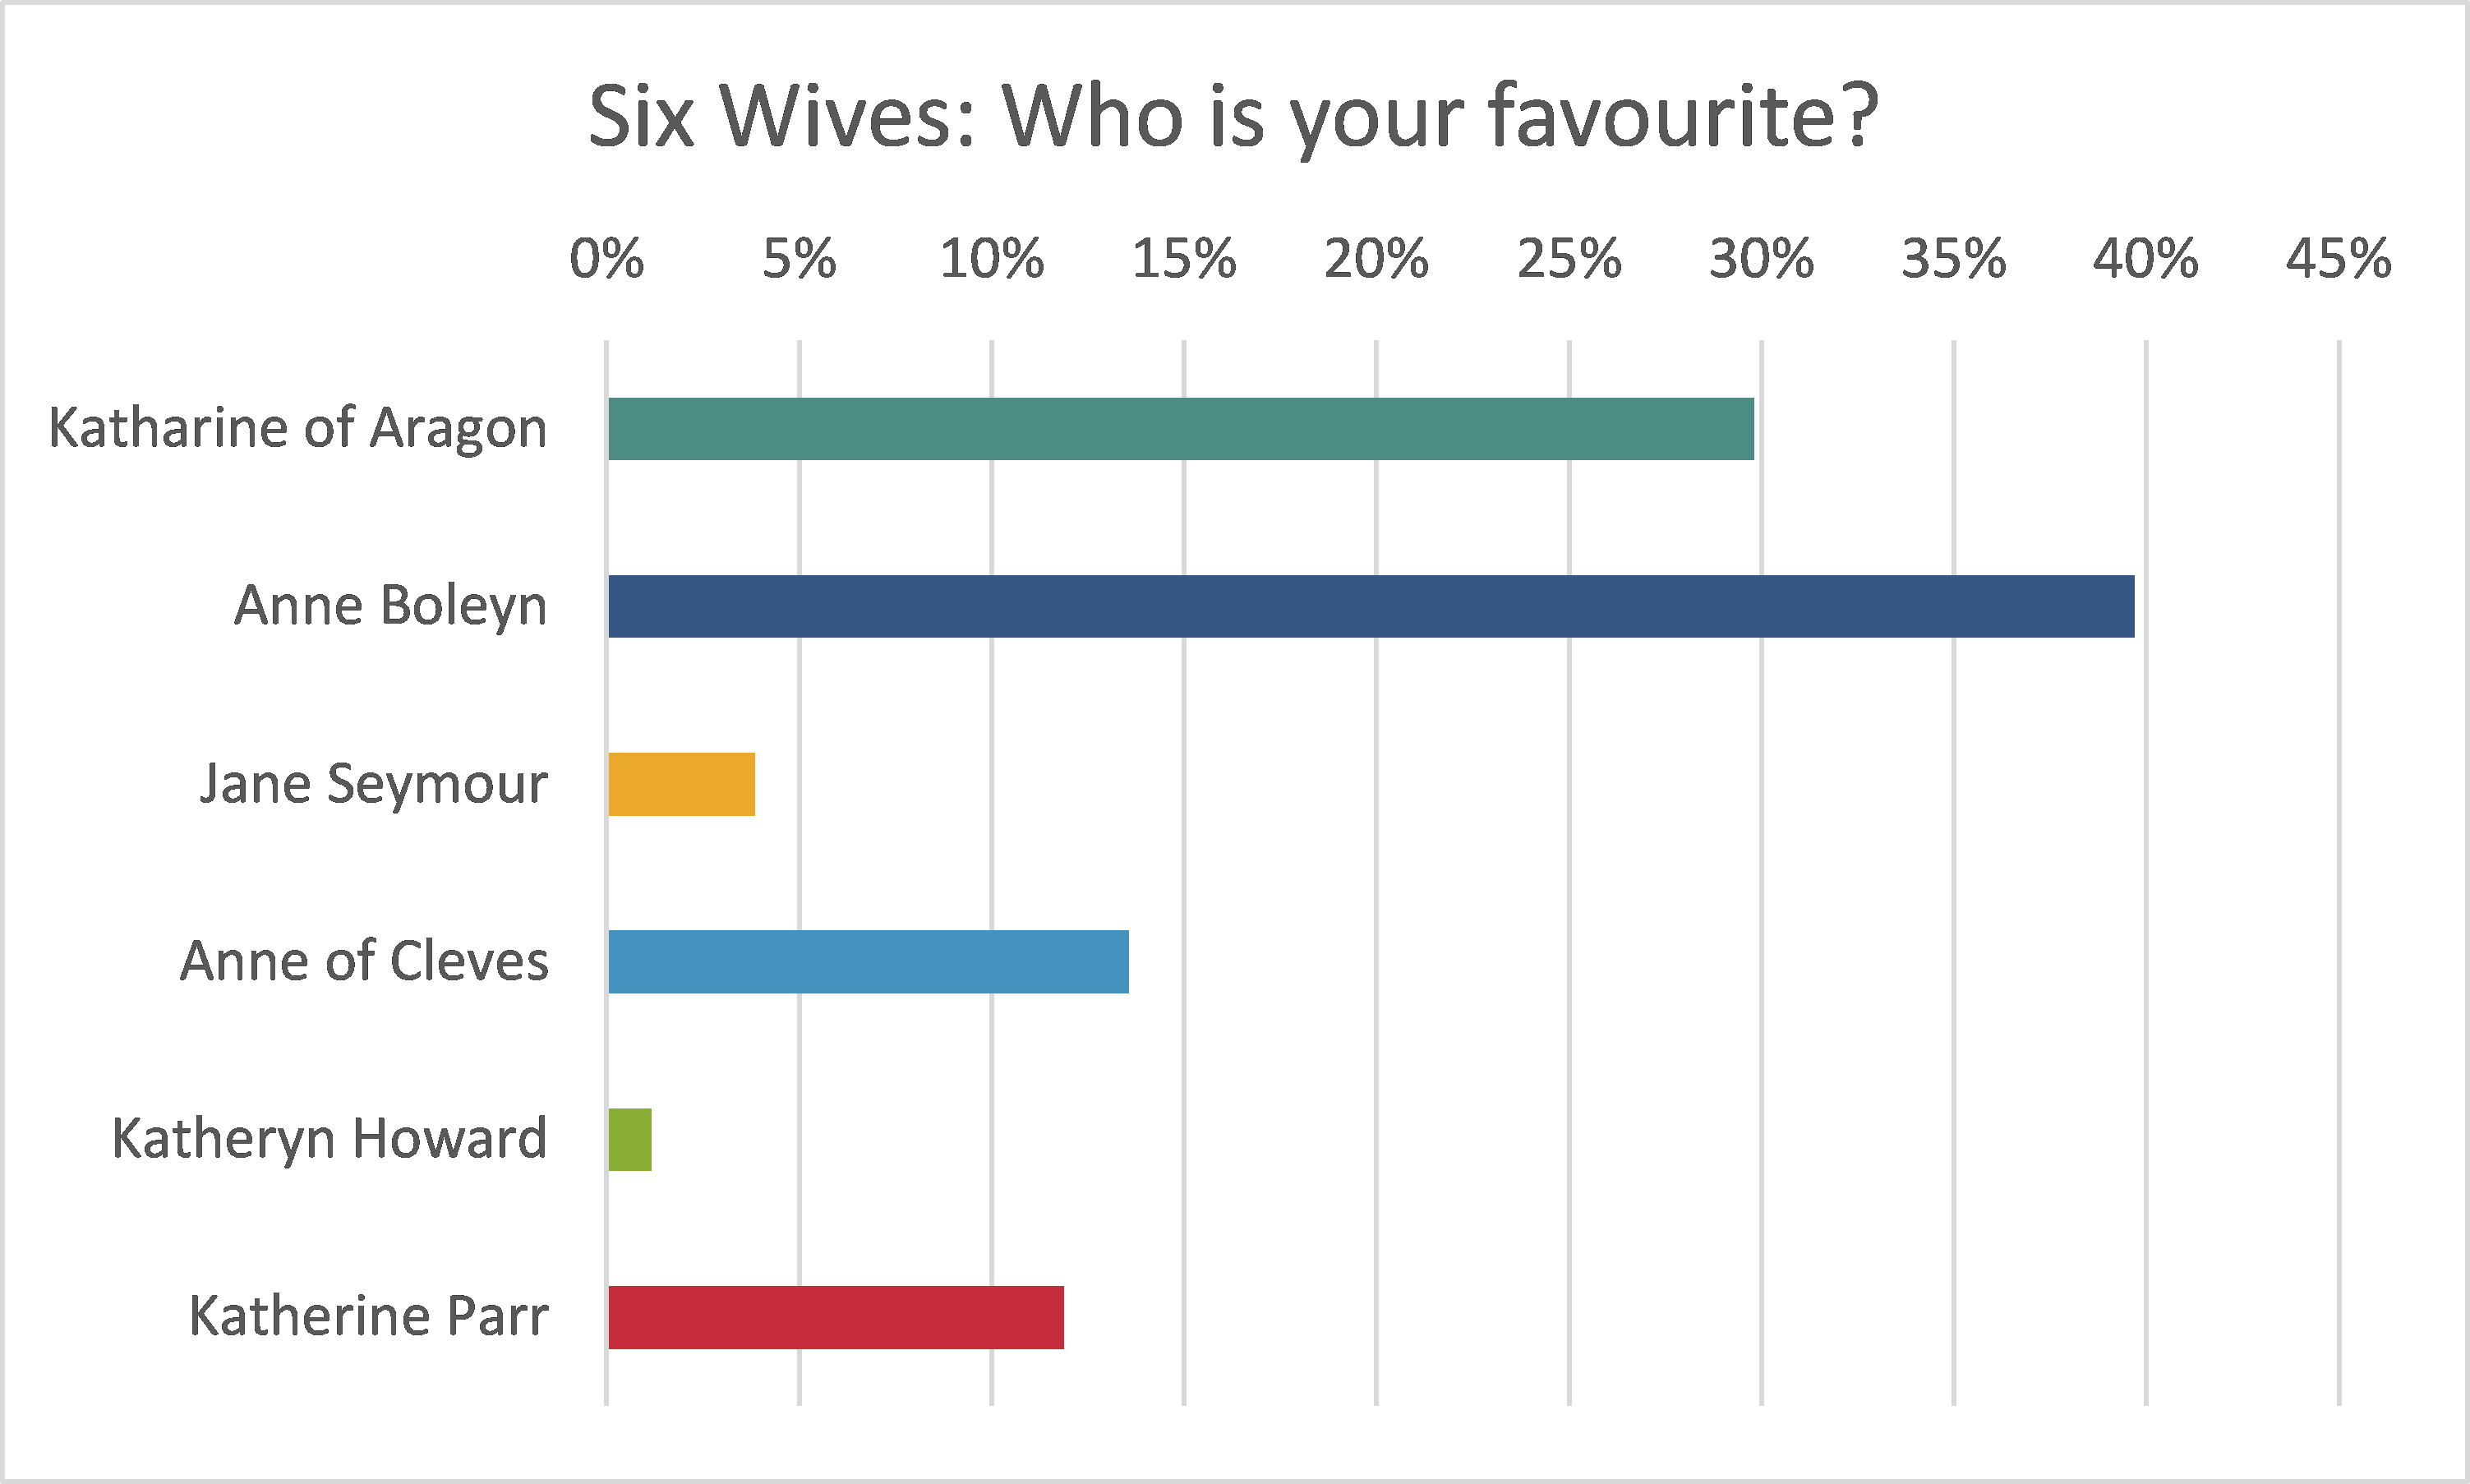 Six Wives Survey Results